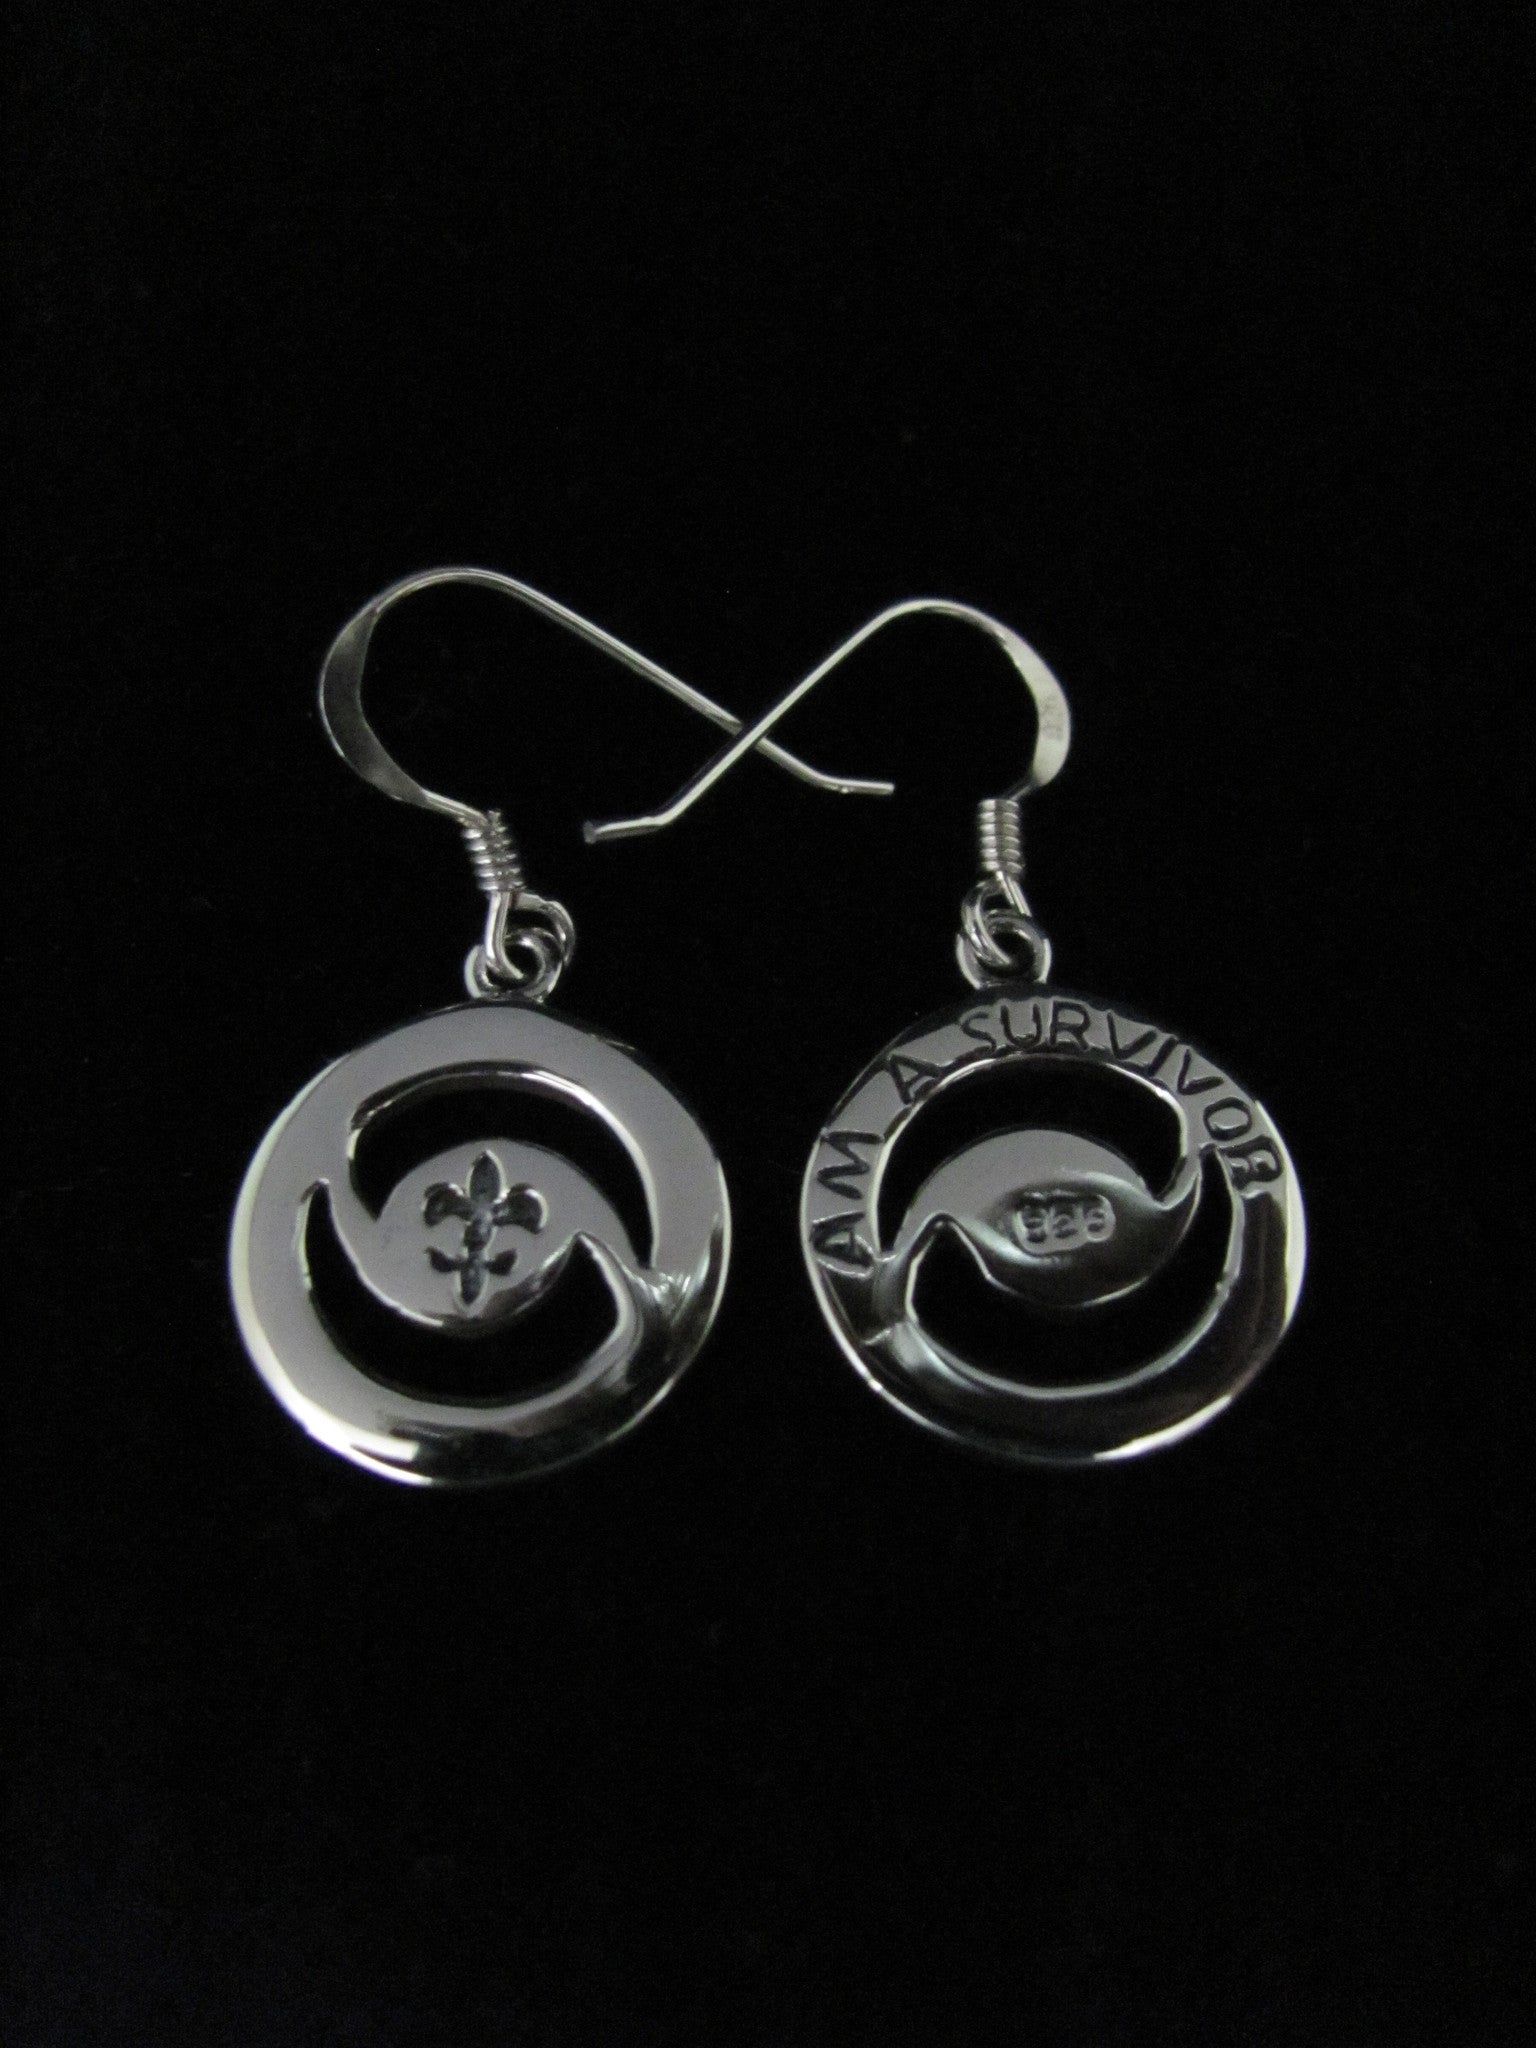 """I Am A Survivor"" Hurricane Earrings"